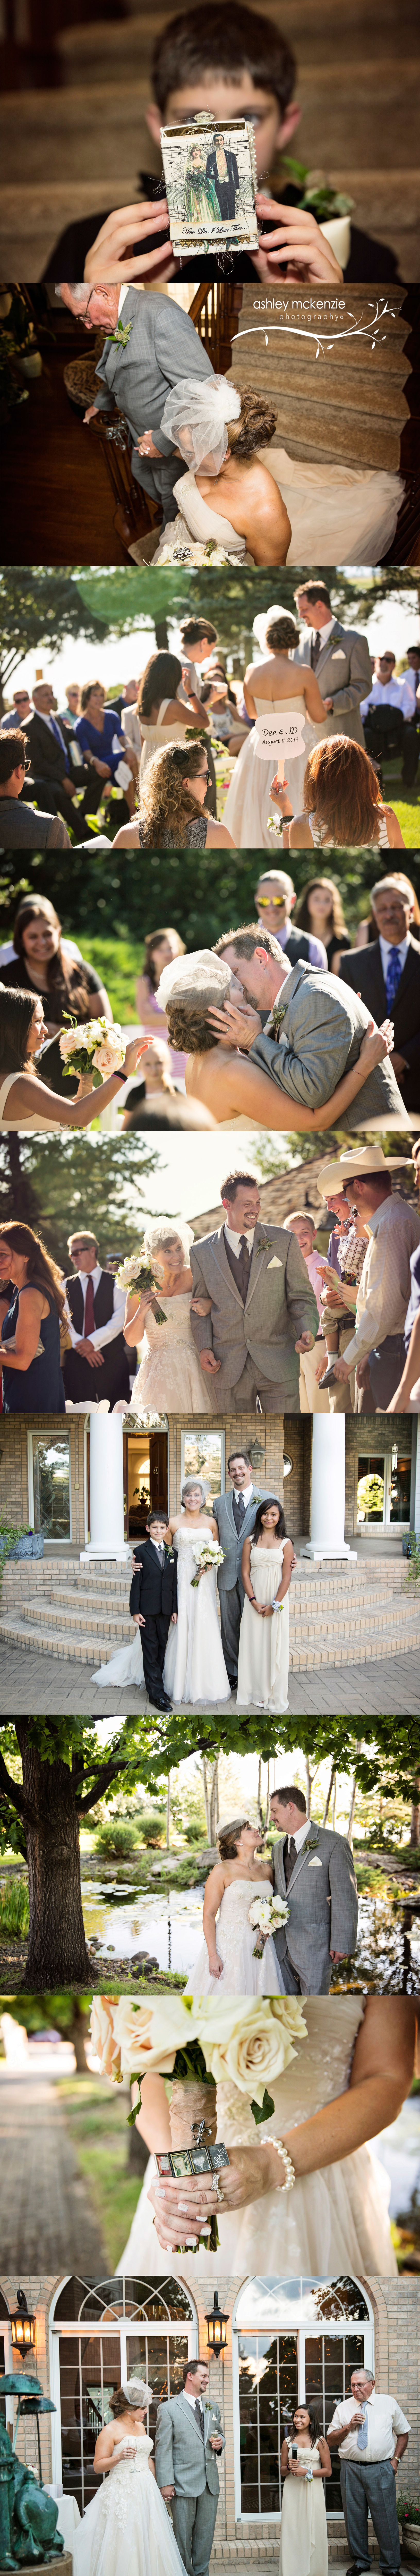 Wedding Photography by Ashley McKenzie Photography in Greeley, Colorado